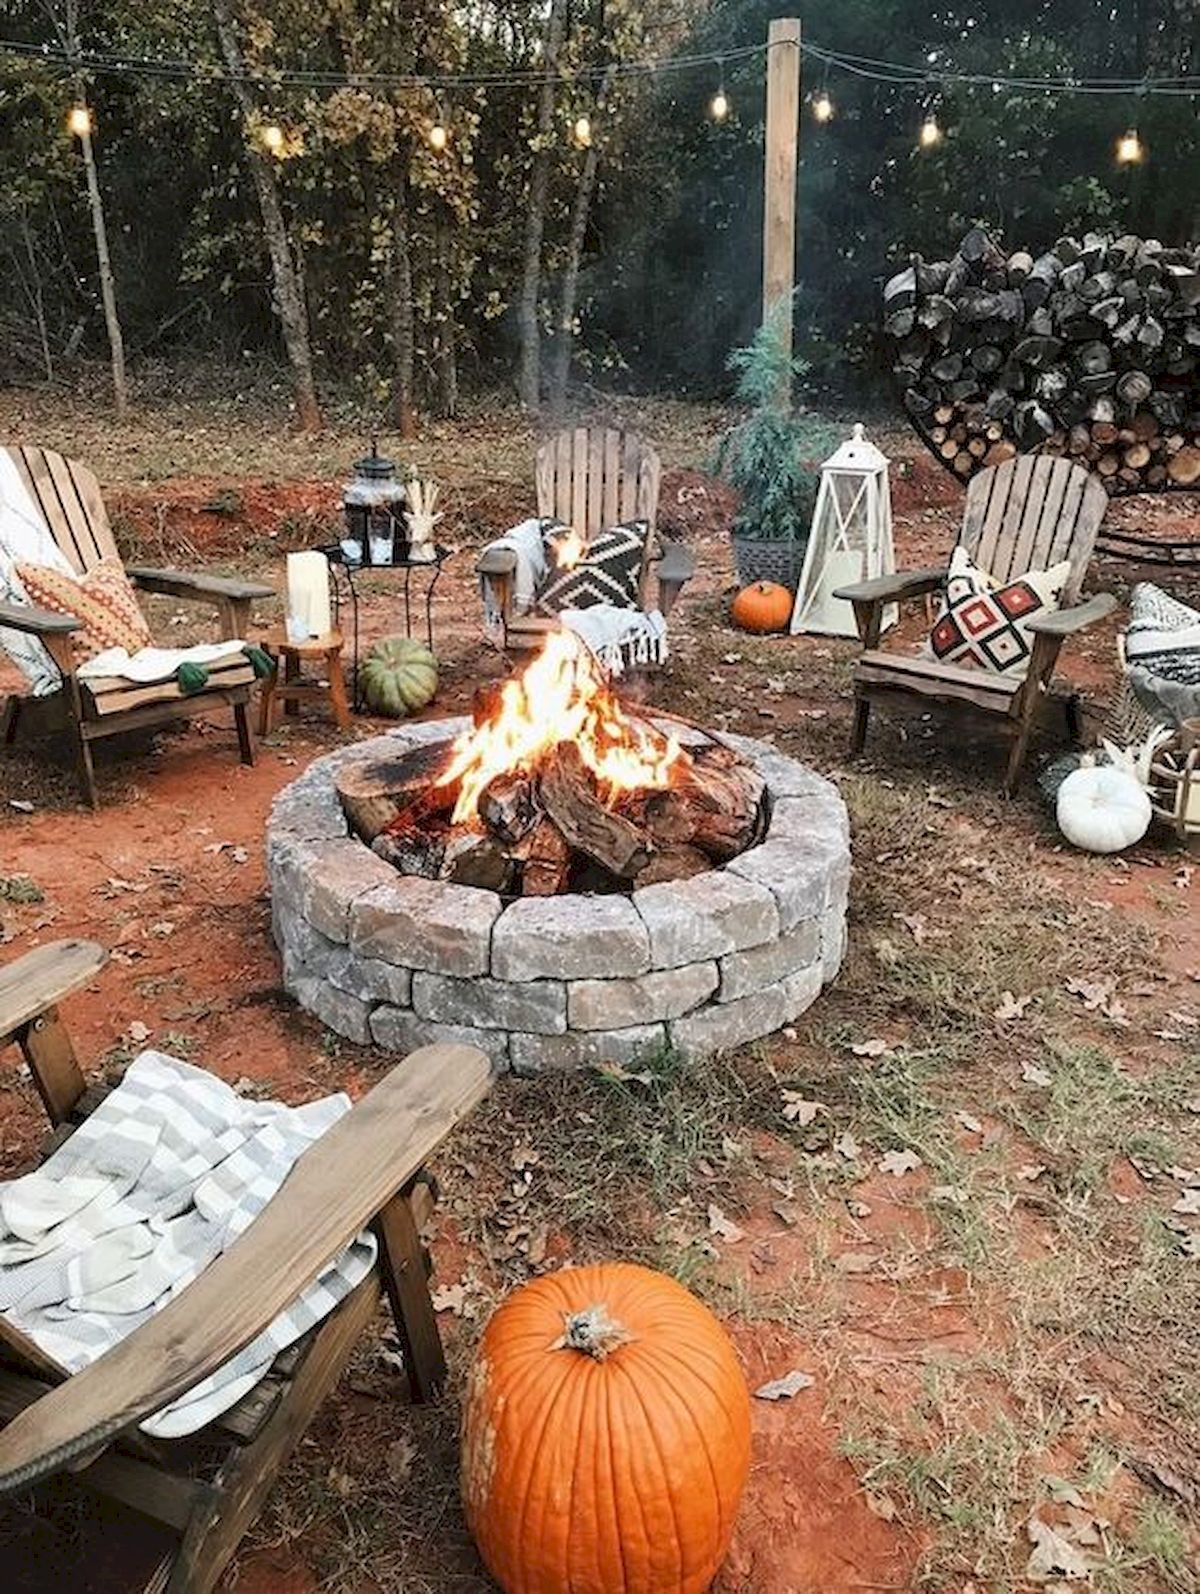 55 Awesome Backyard Fire Pit Ideas For Comfortable Relax ,  #Awesome #Backyard #Comfortable #Fire #Ideas #Awesome #backyard #Comfortable #Fire #Firepit #Firepit area #Firepit diy #Firepit ideas #Firepit modern #Ideas #Pit #relax